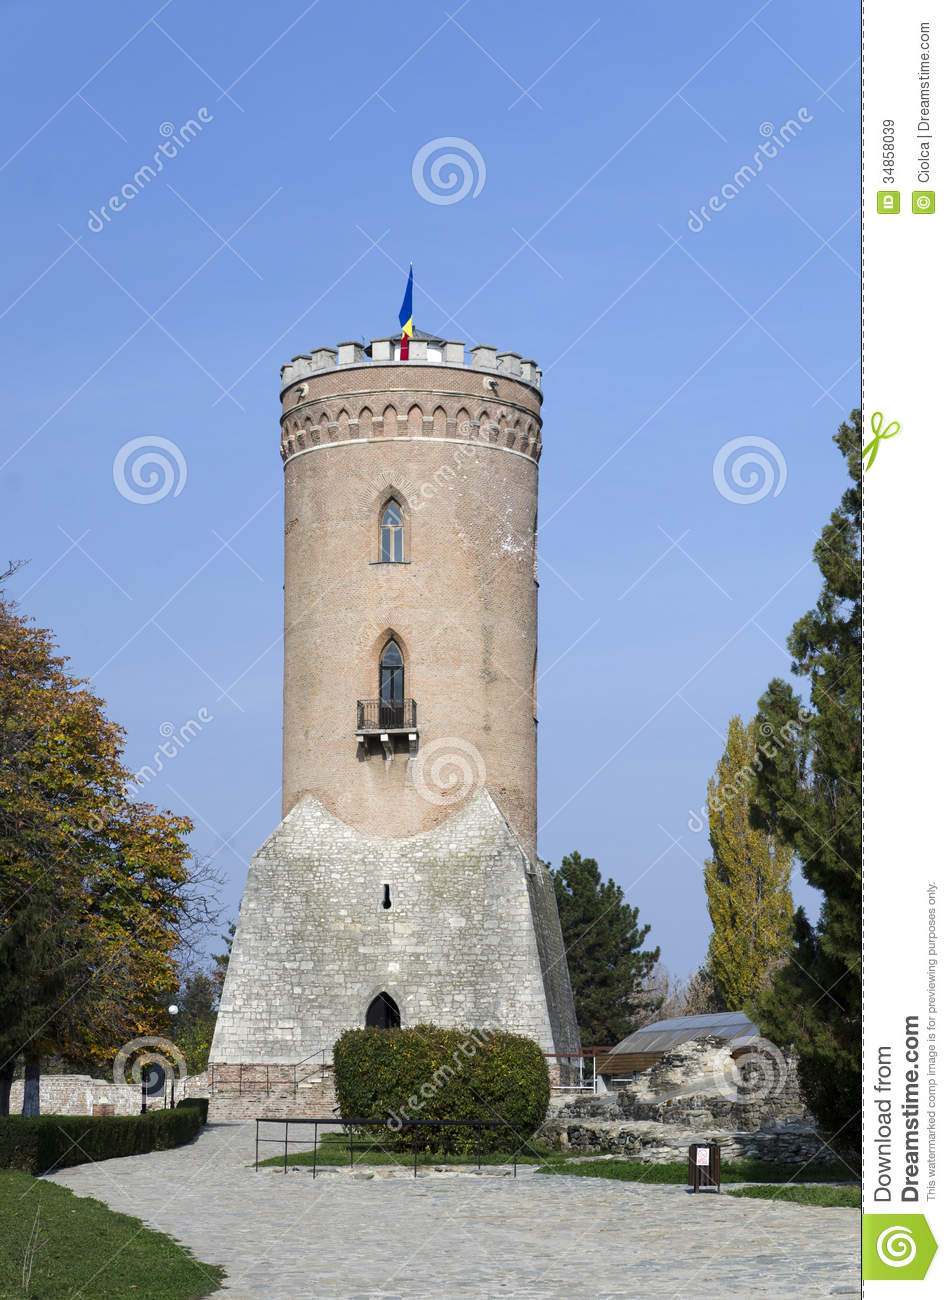 Chindia Tower (Turnul Chindiei) Royalty Free Stock Images ...